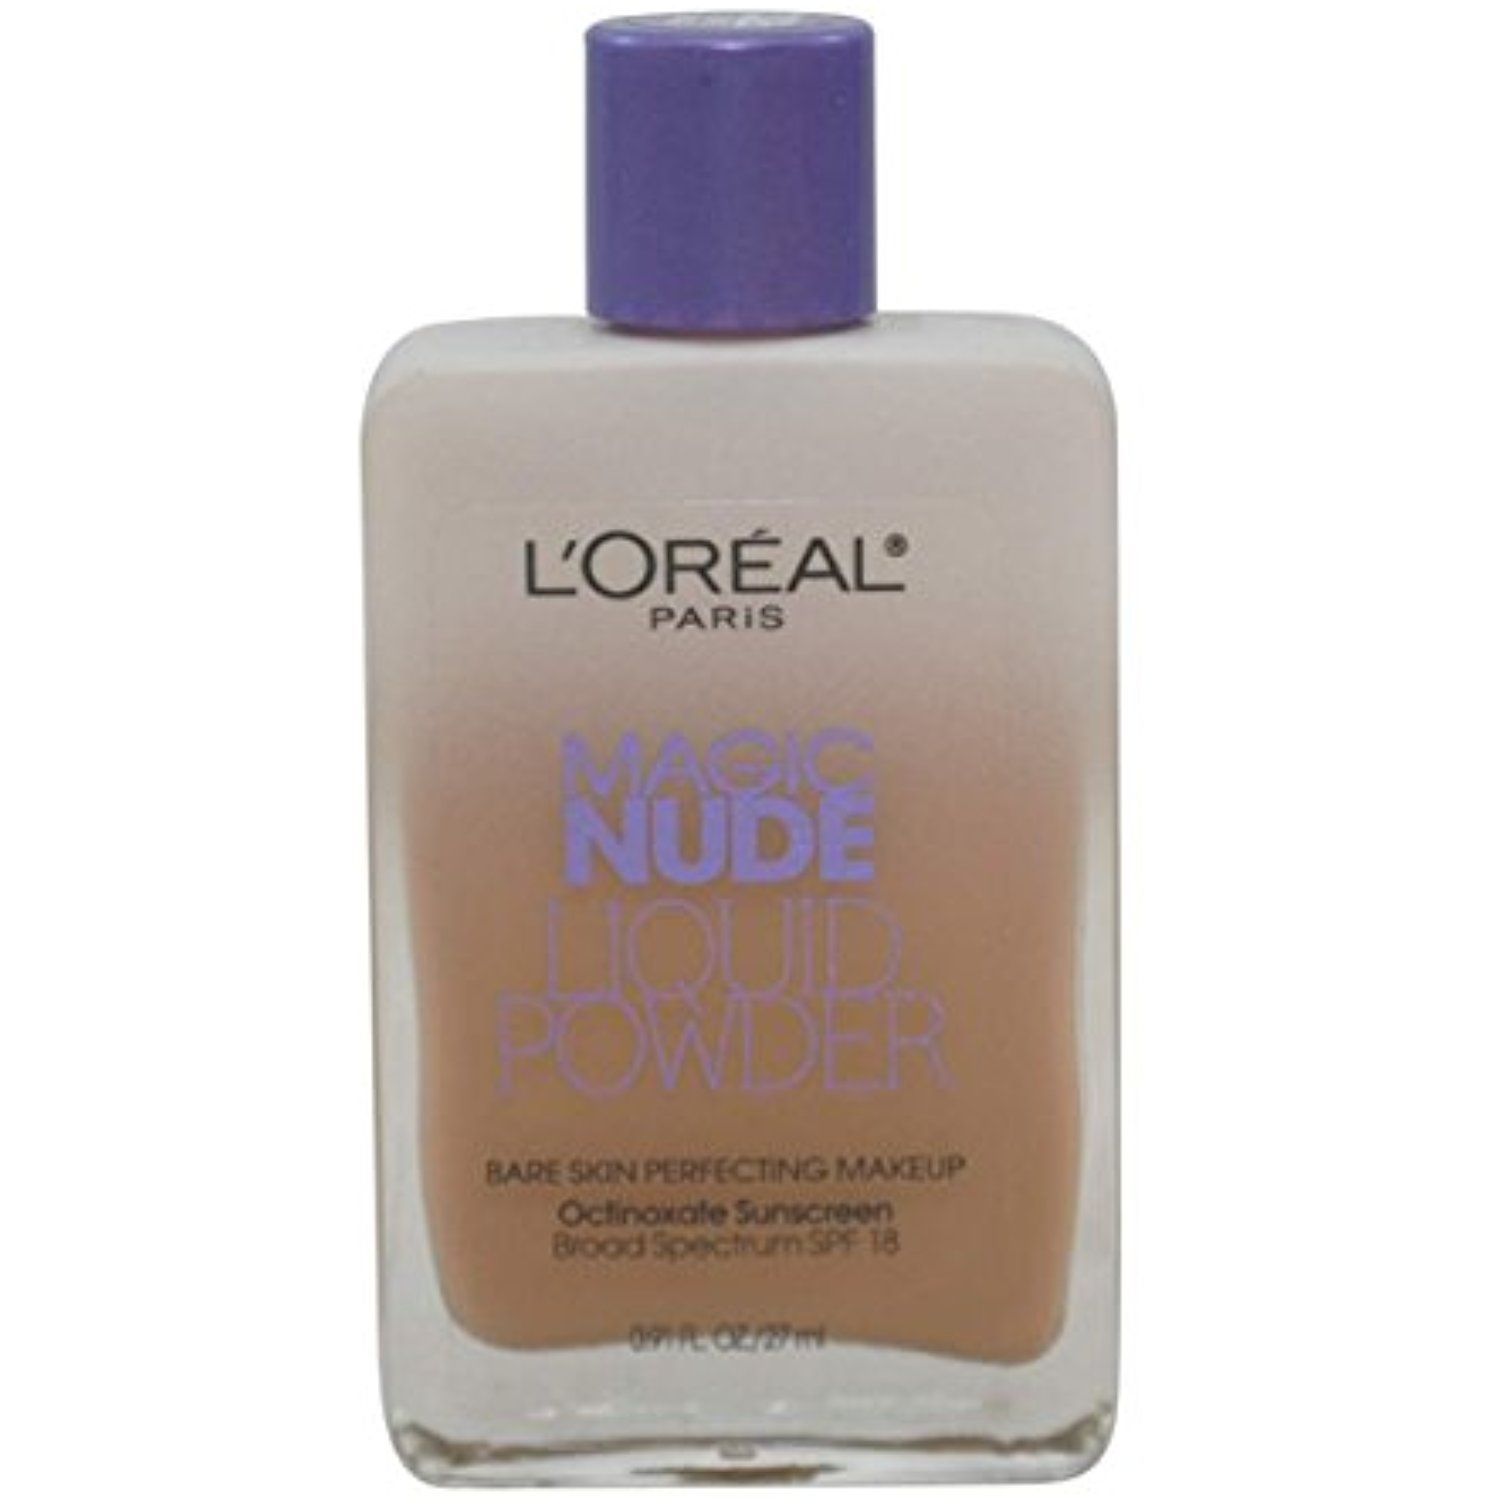 LOreal Magic Nude Foundation; Review & Swatches of Shades